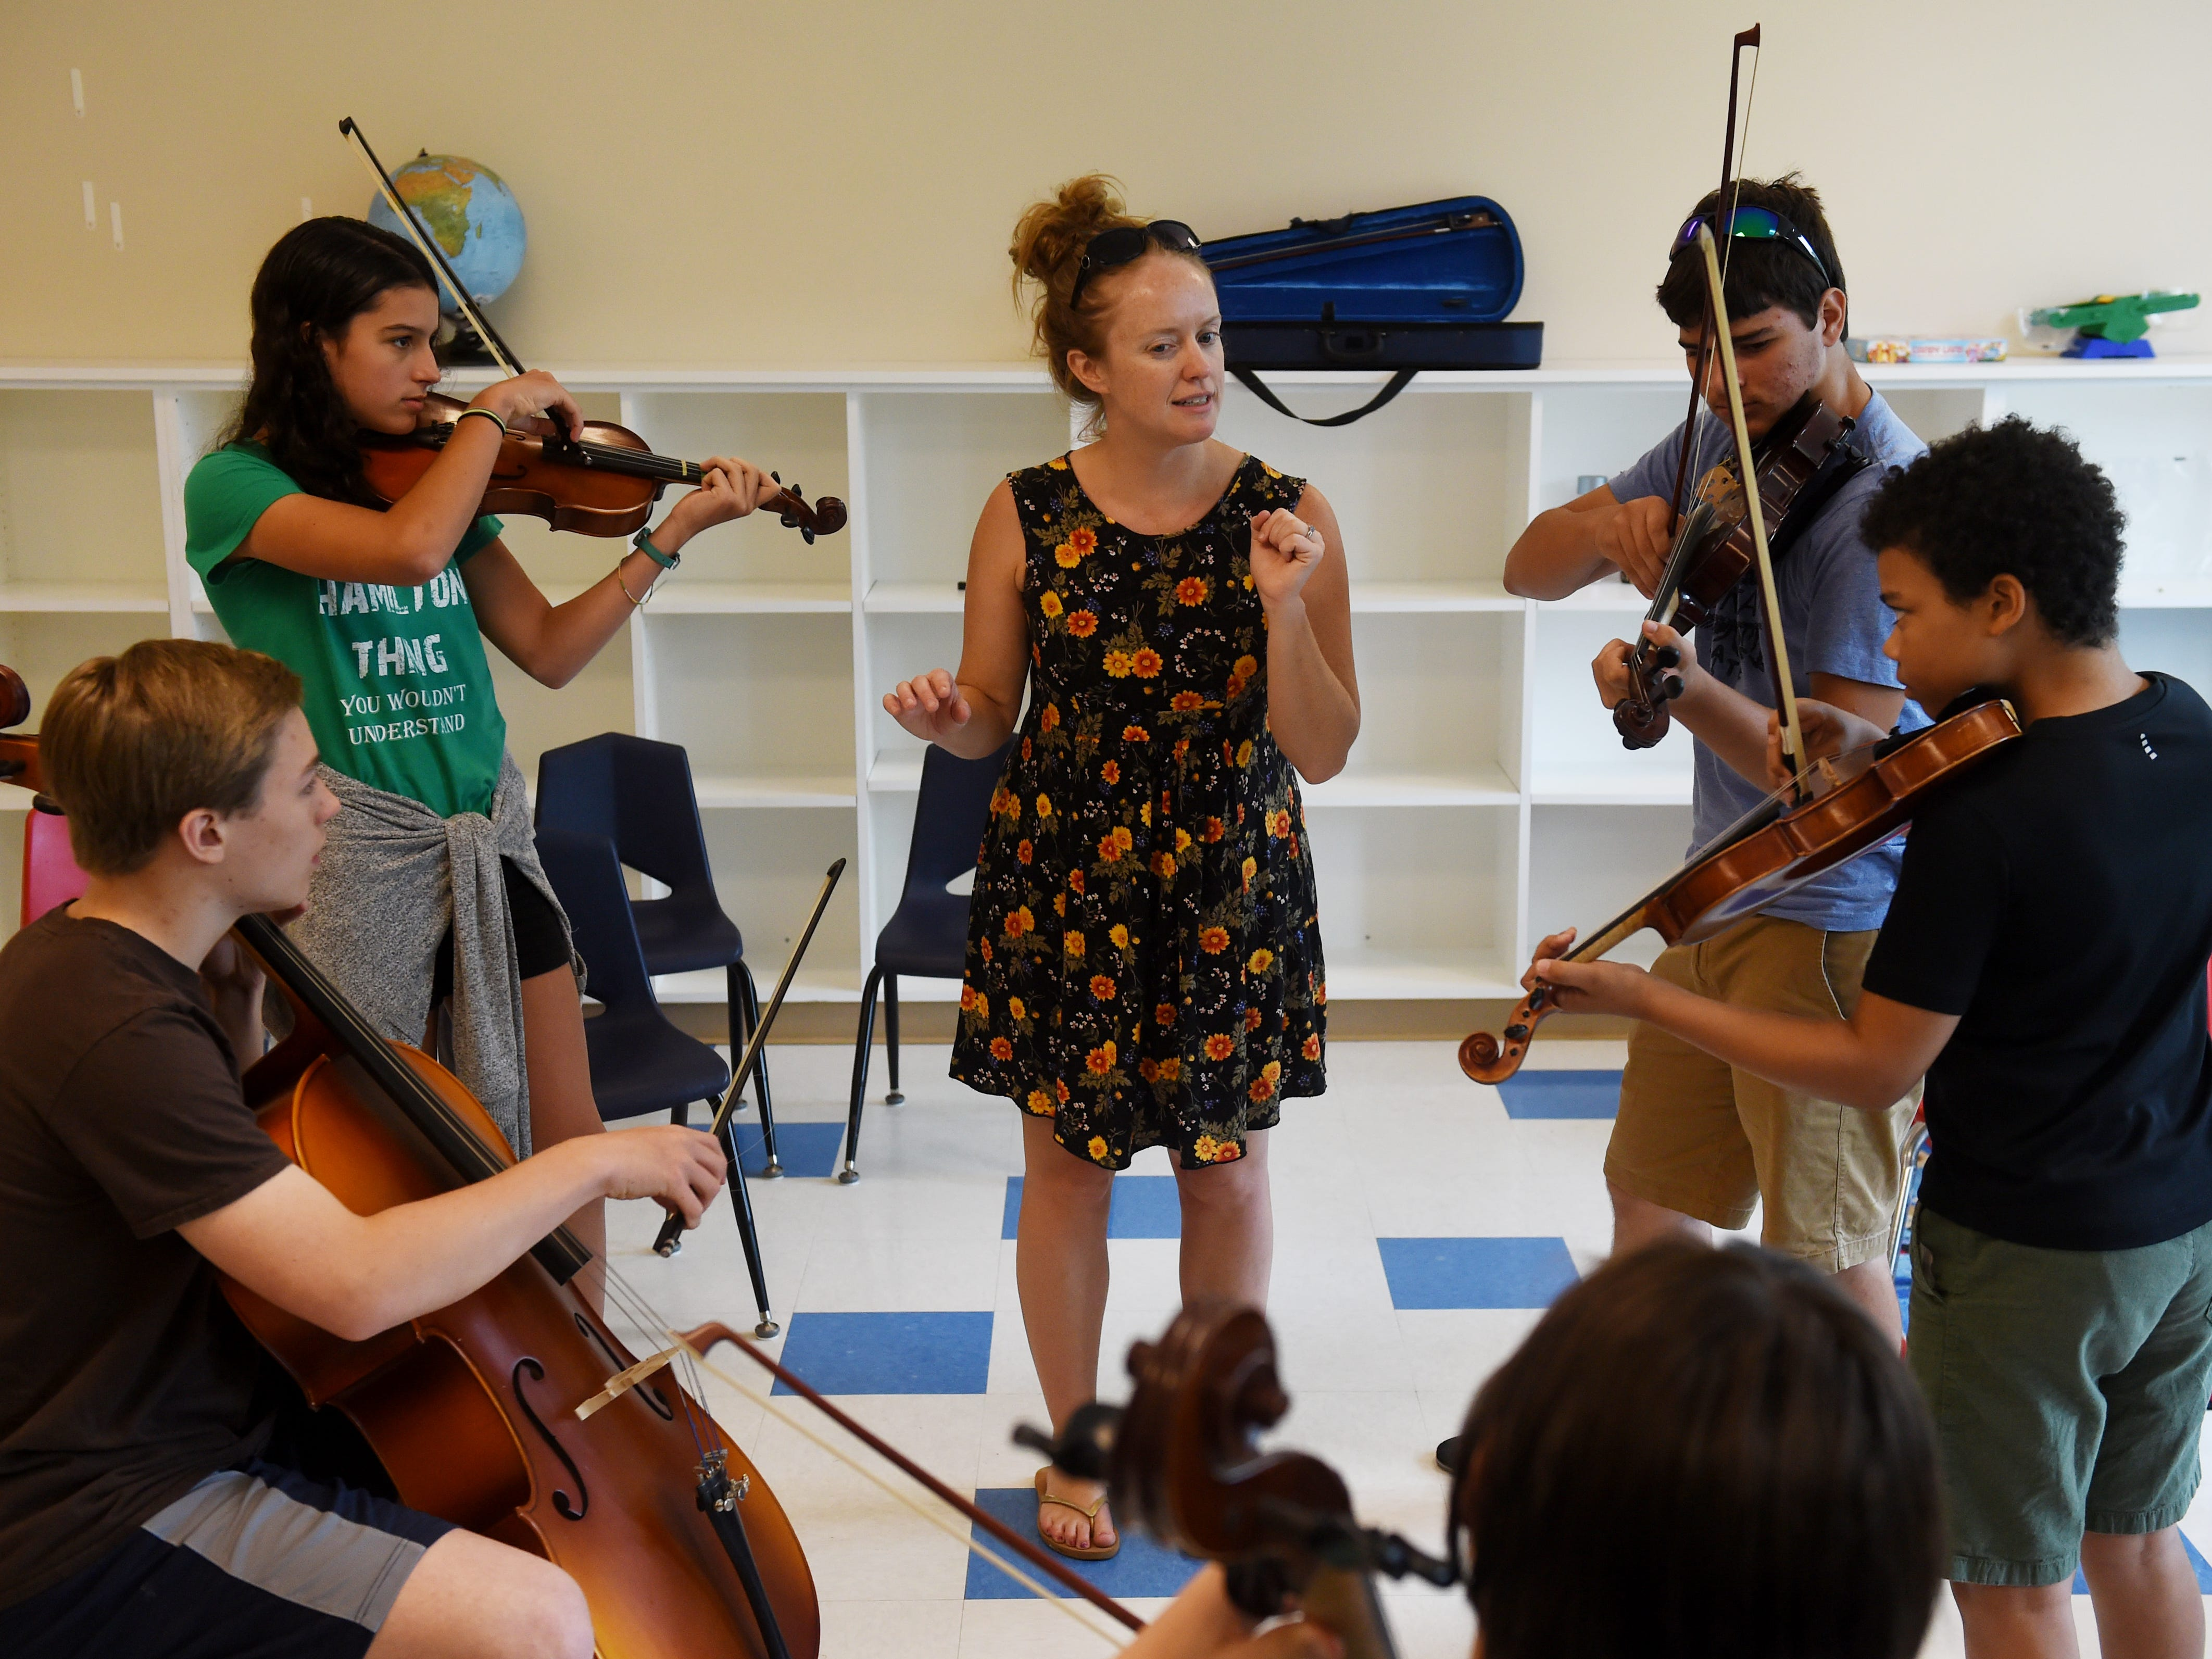 """Hanneke Cassel (center) guides Zadie Diniz (from left), Obed Barba, Gabriel Moore, Adrian Brubeck (not pictured), Colin Vellante and Zach Hessler during a band rehearsal on Thursday, July 12, 2018 at the 9th annual Mike Block String Camp at First Presbyterian Church in Vero Beach. """"Each year we've been growing in size for both students and faculty,"""" said Mike Block. """"The idea is for any string player, whether it's guitar, bass, violin or cello, we want people to learn different styles of music and then to use the music from different styles and put the students into bands to develop their own creativity."""" Students of the camp are placed into classes according to their ability and form bands that will perform for the public on Saturday, July 14 at 3:00 p.m. as part of The Vero Beach International Music Festival."""